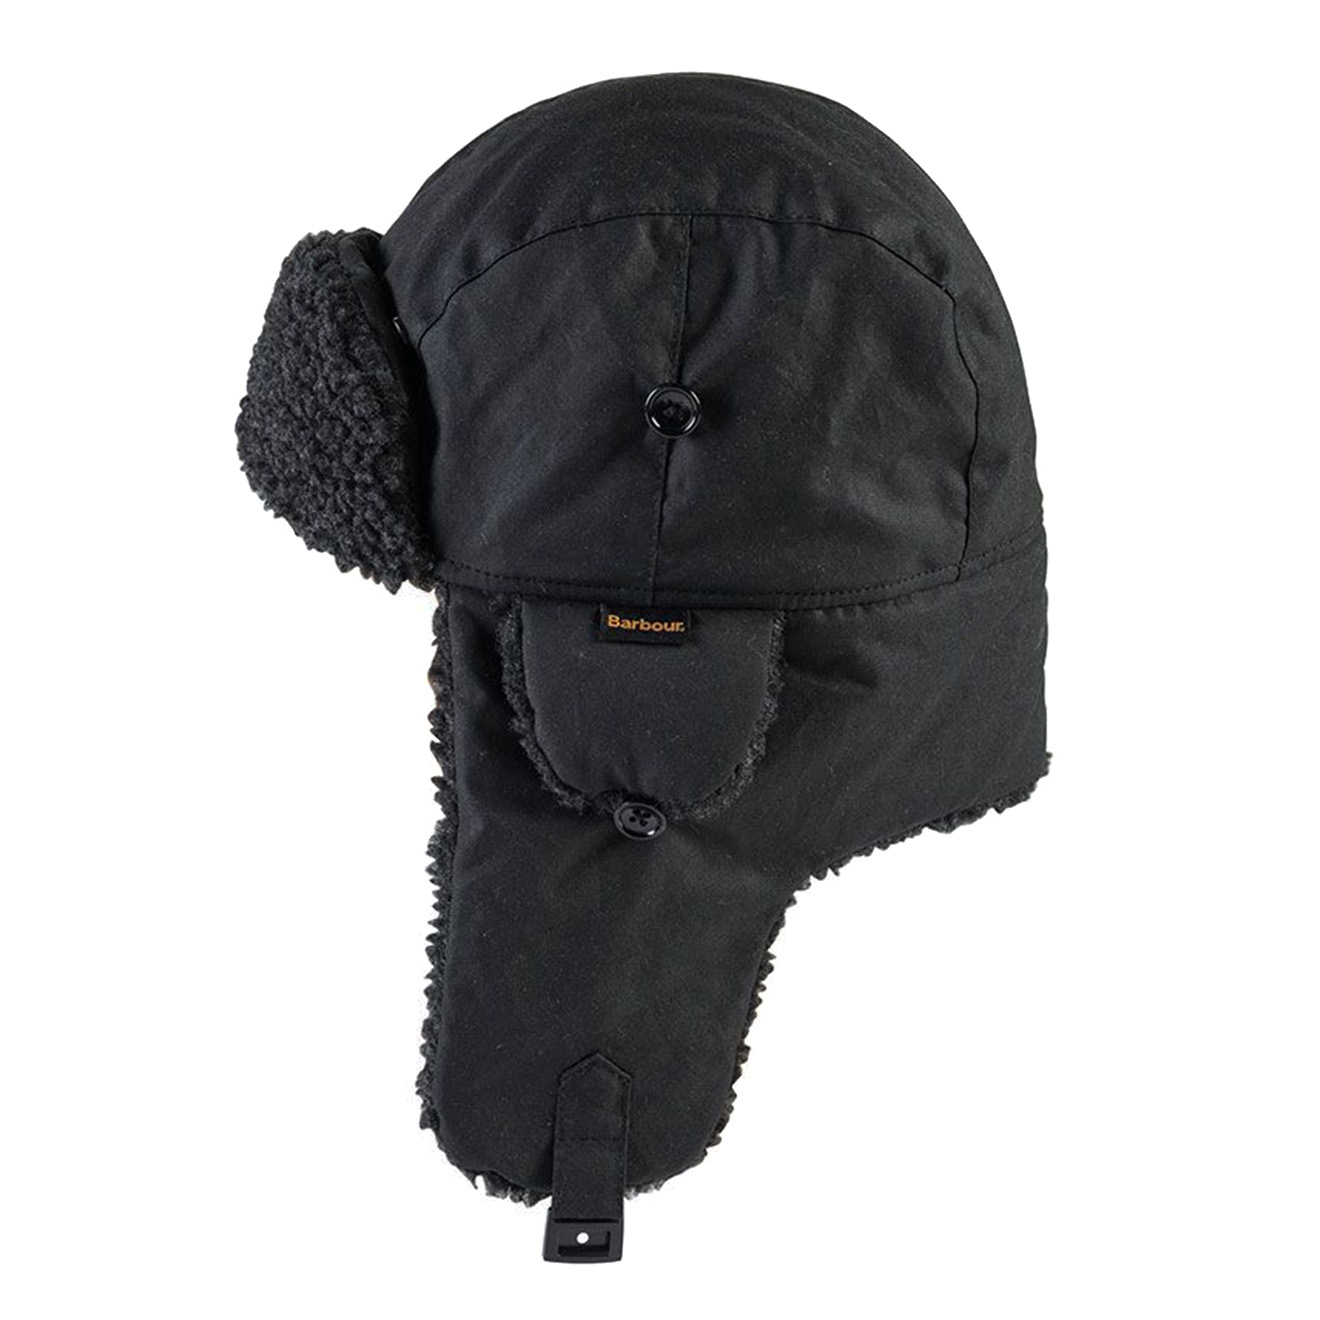 58d4222a64d Barbour Fleece Lined Trapper Hat Black - The Sporting Lodge